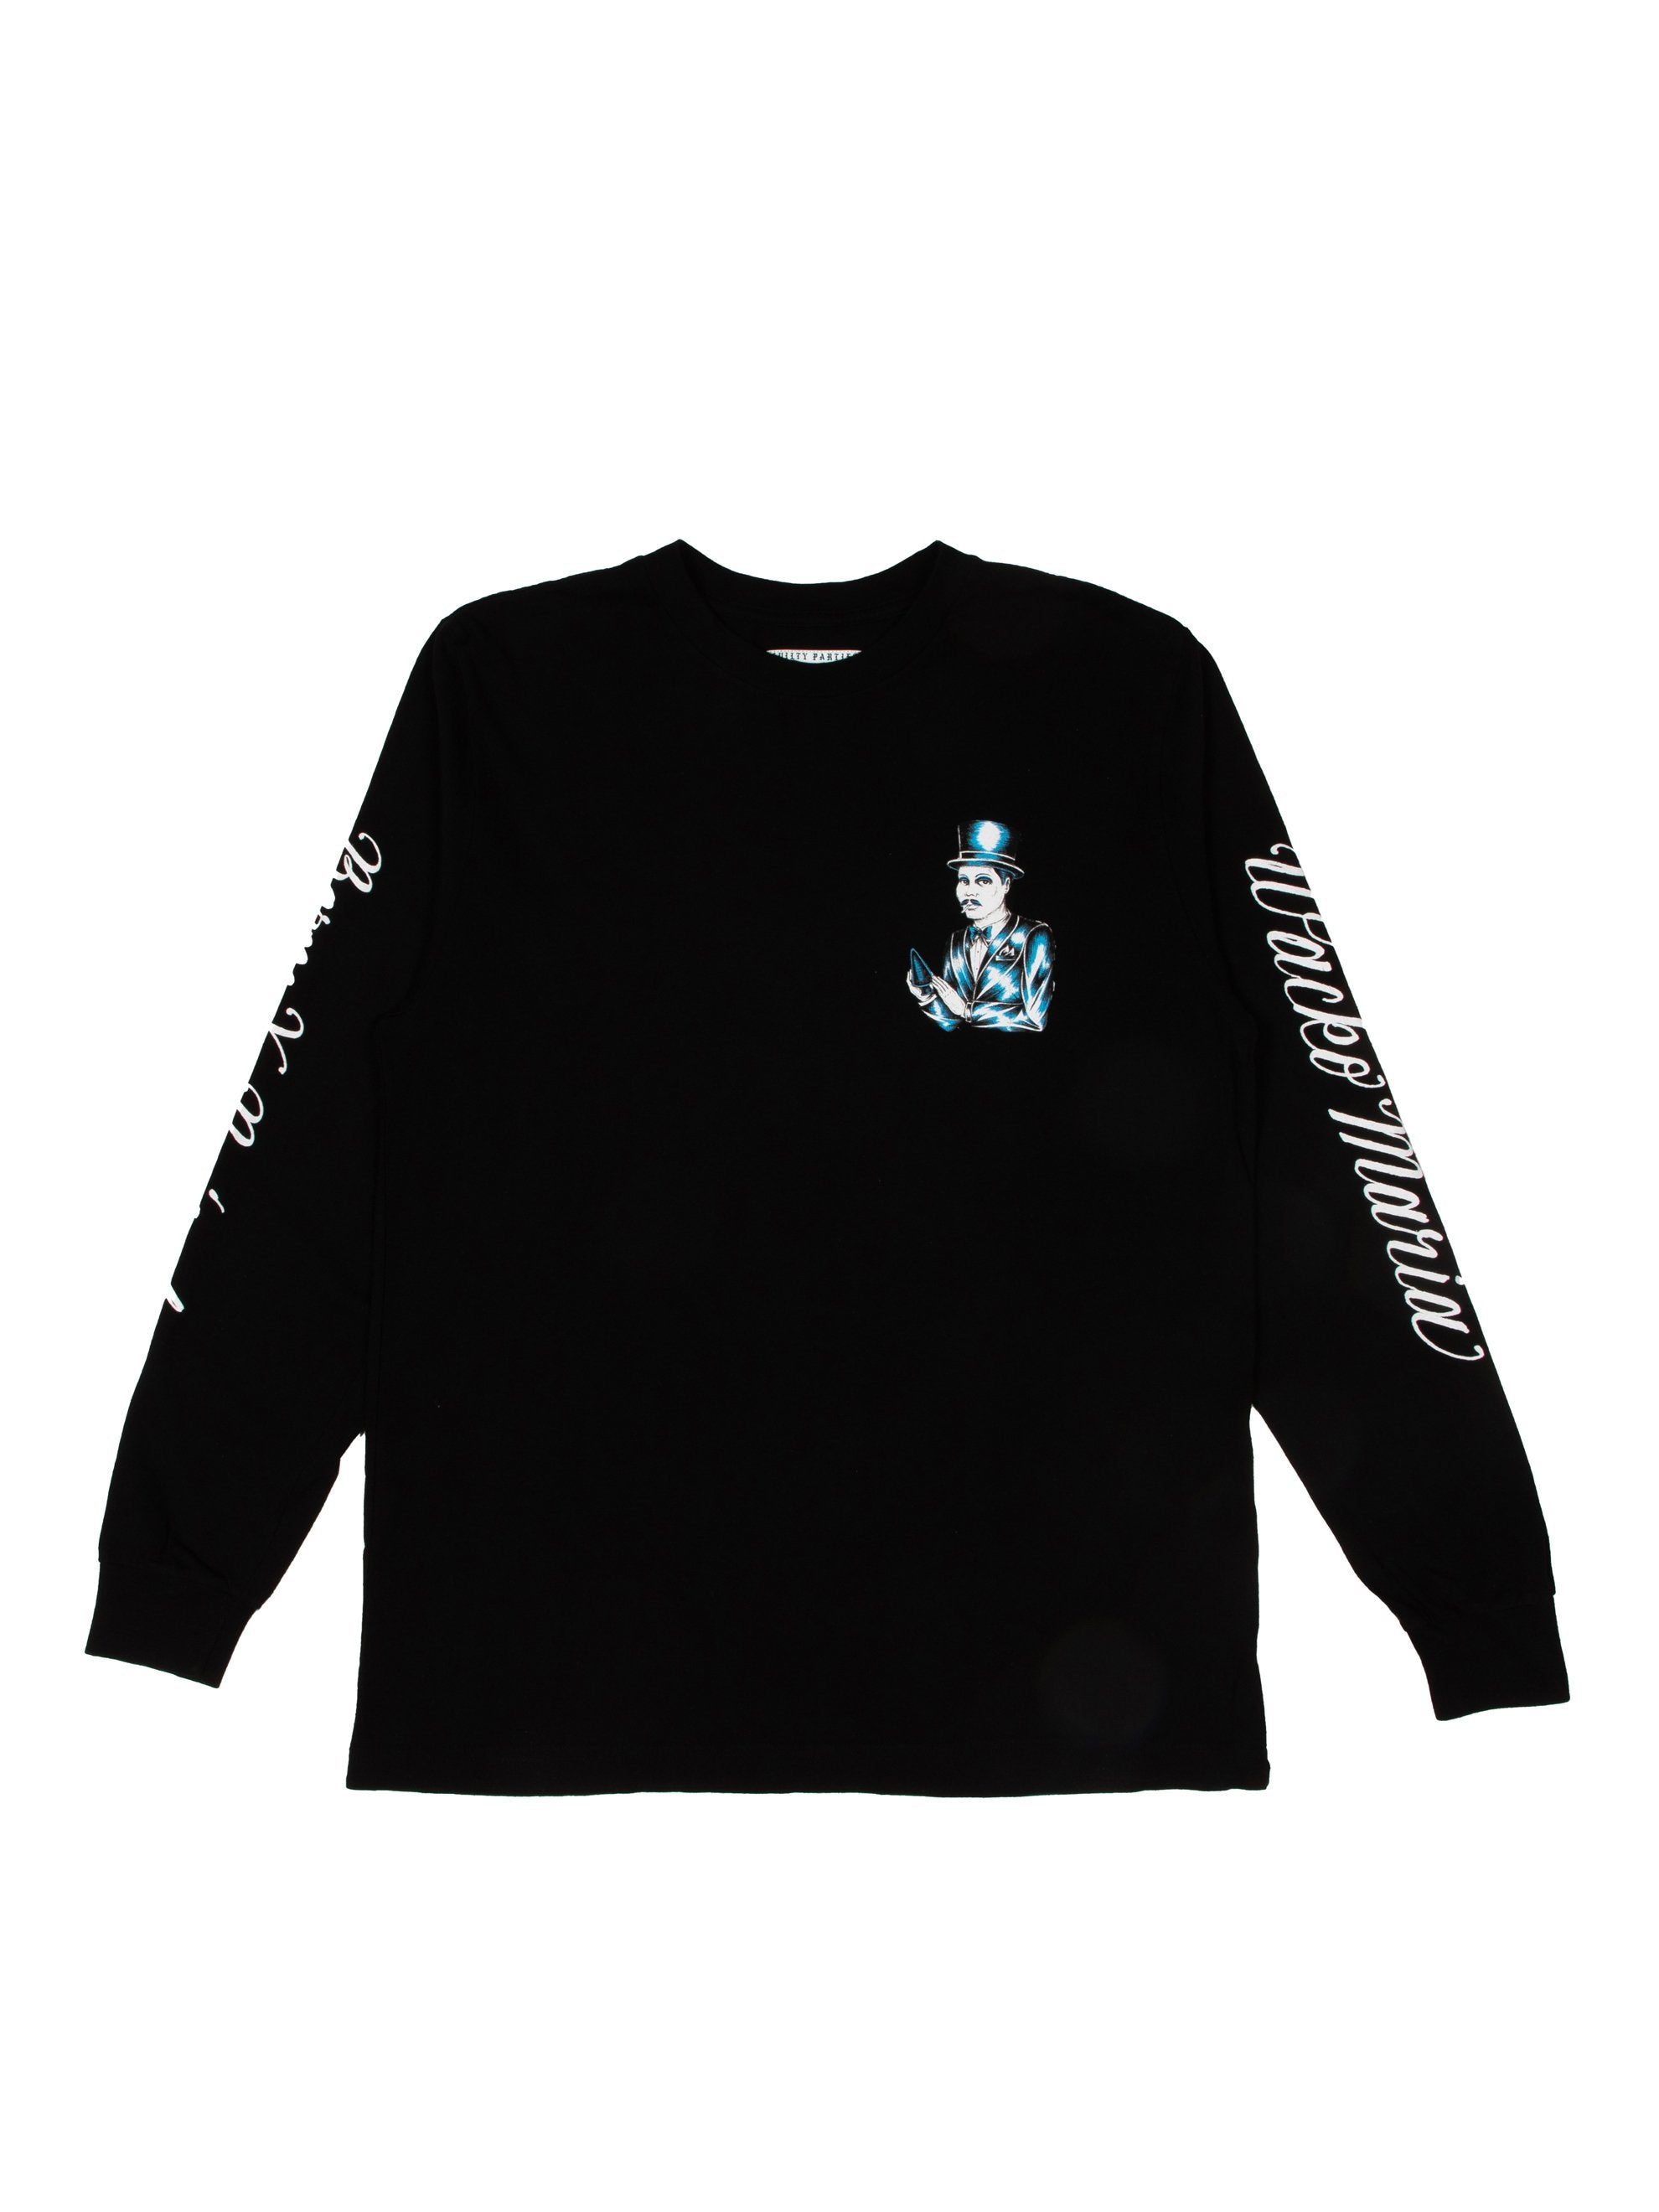 Wacko Born x Raised Butt L/S Tee